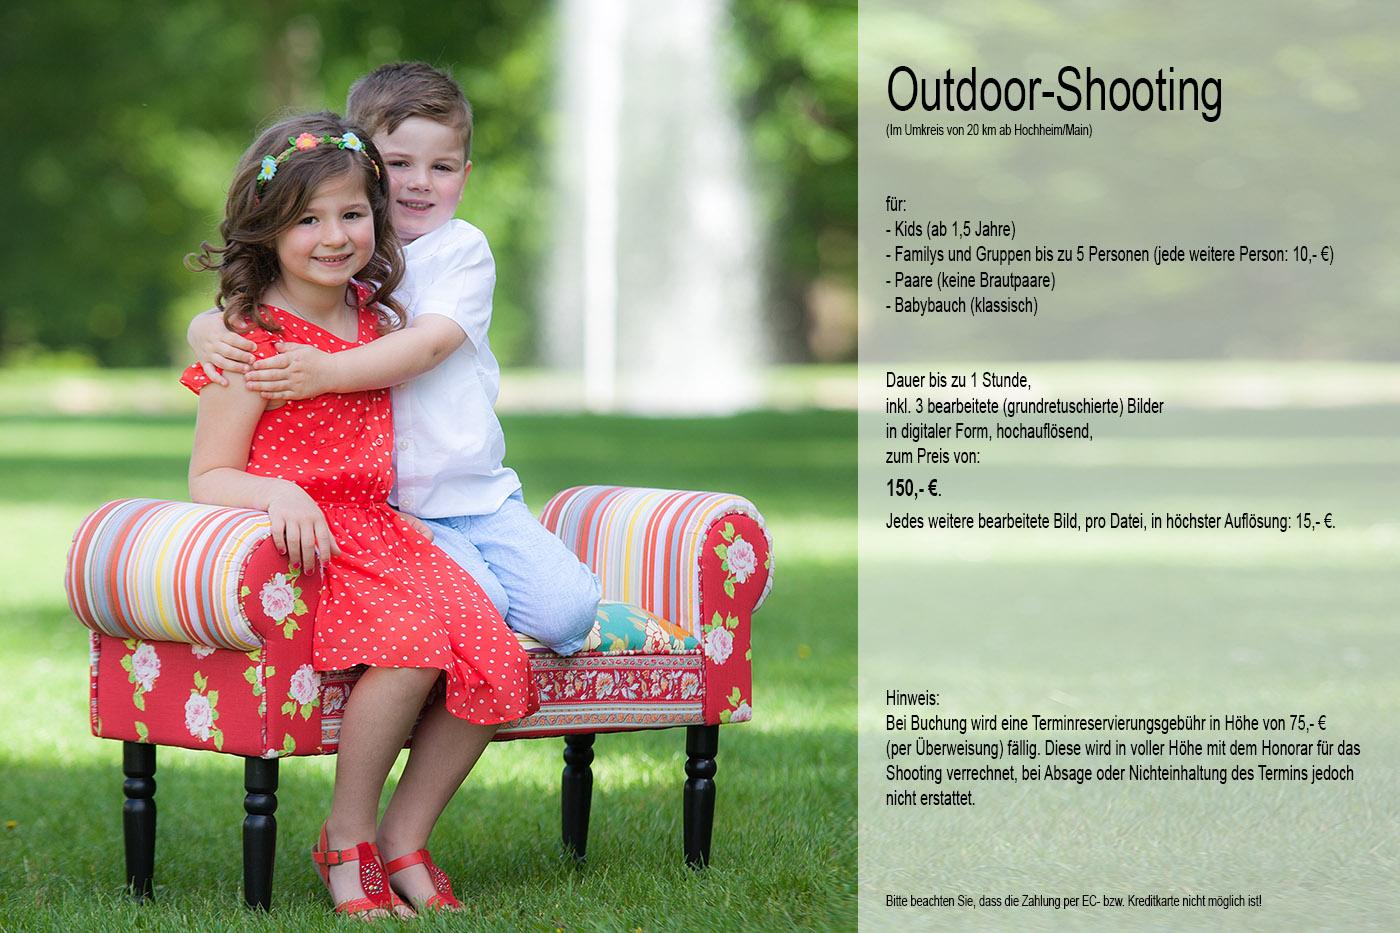 Outdoor-Shooting-Angebot-neu